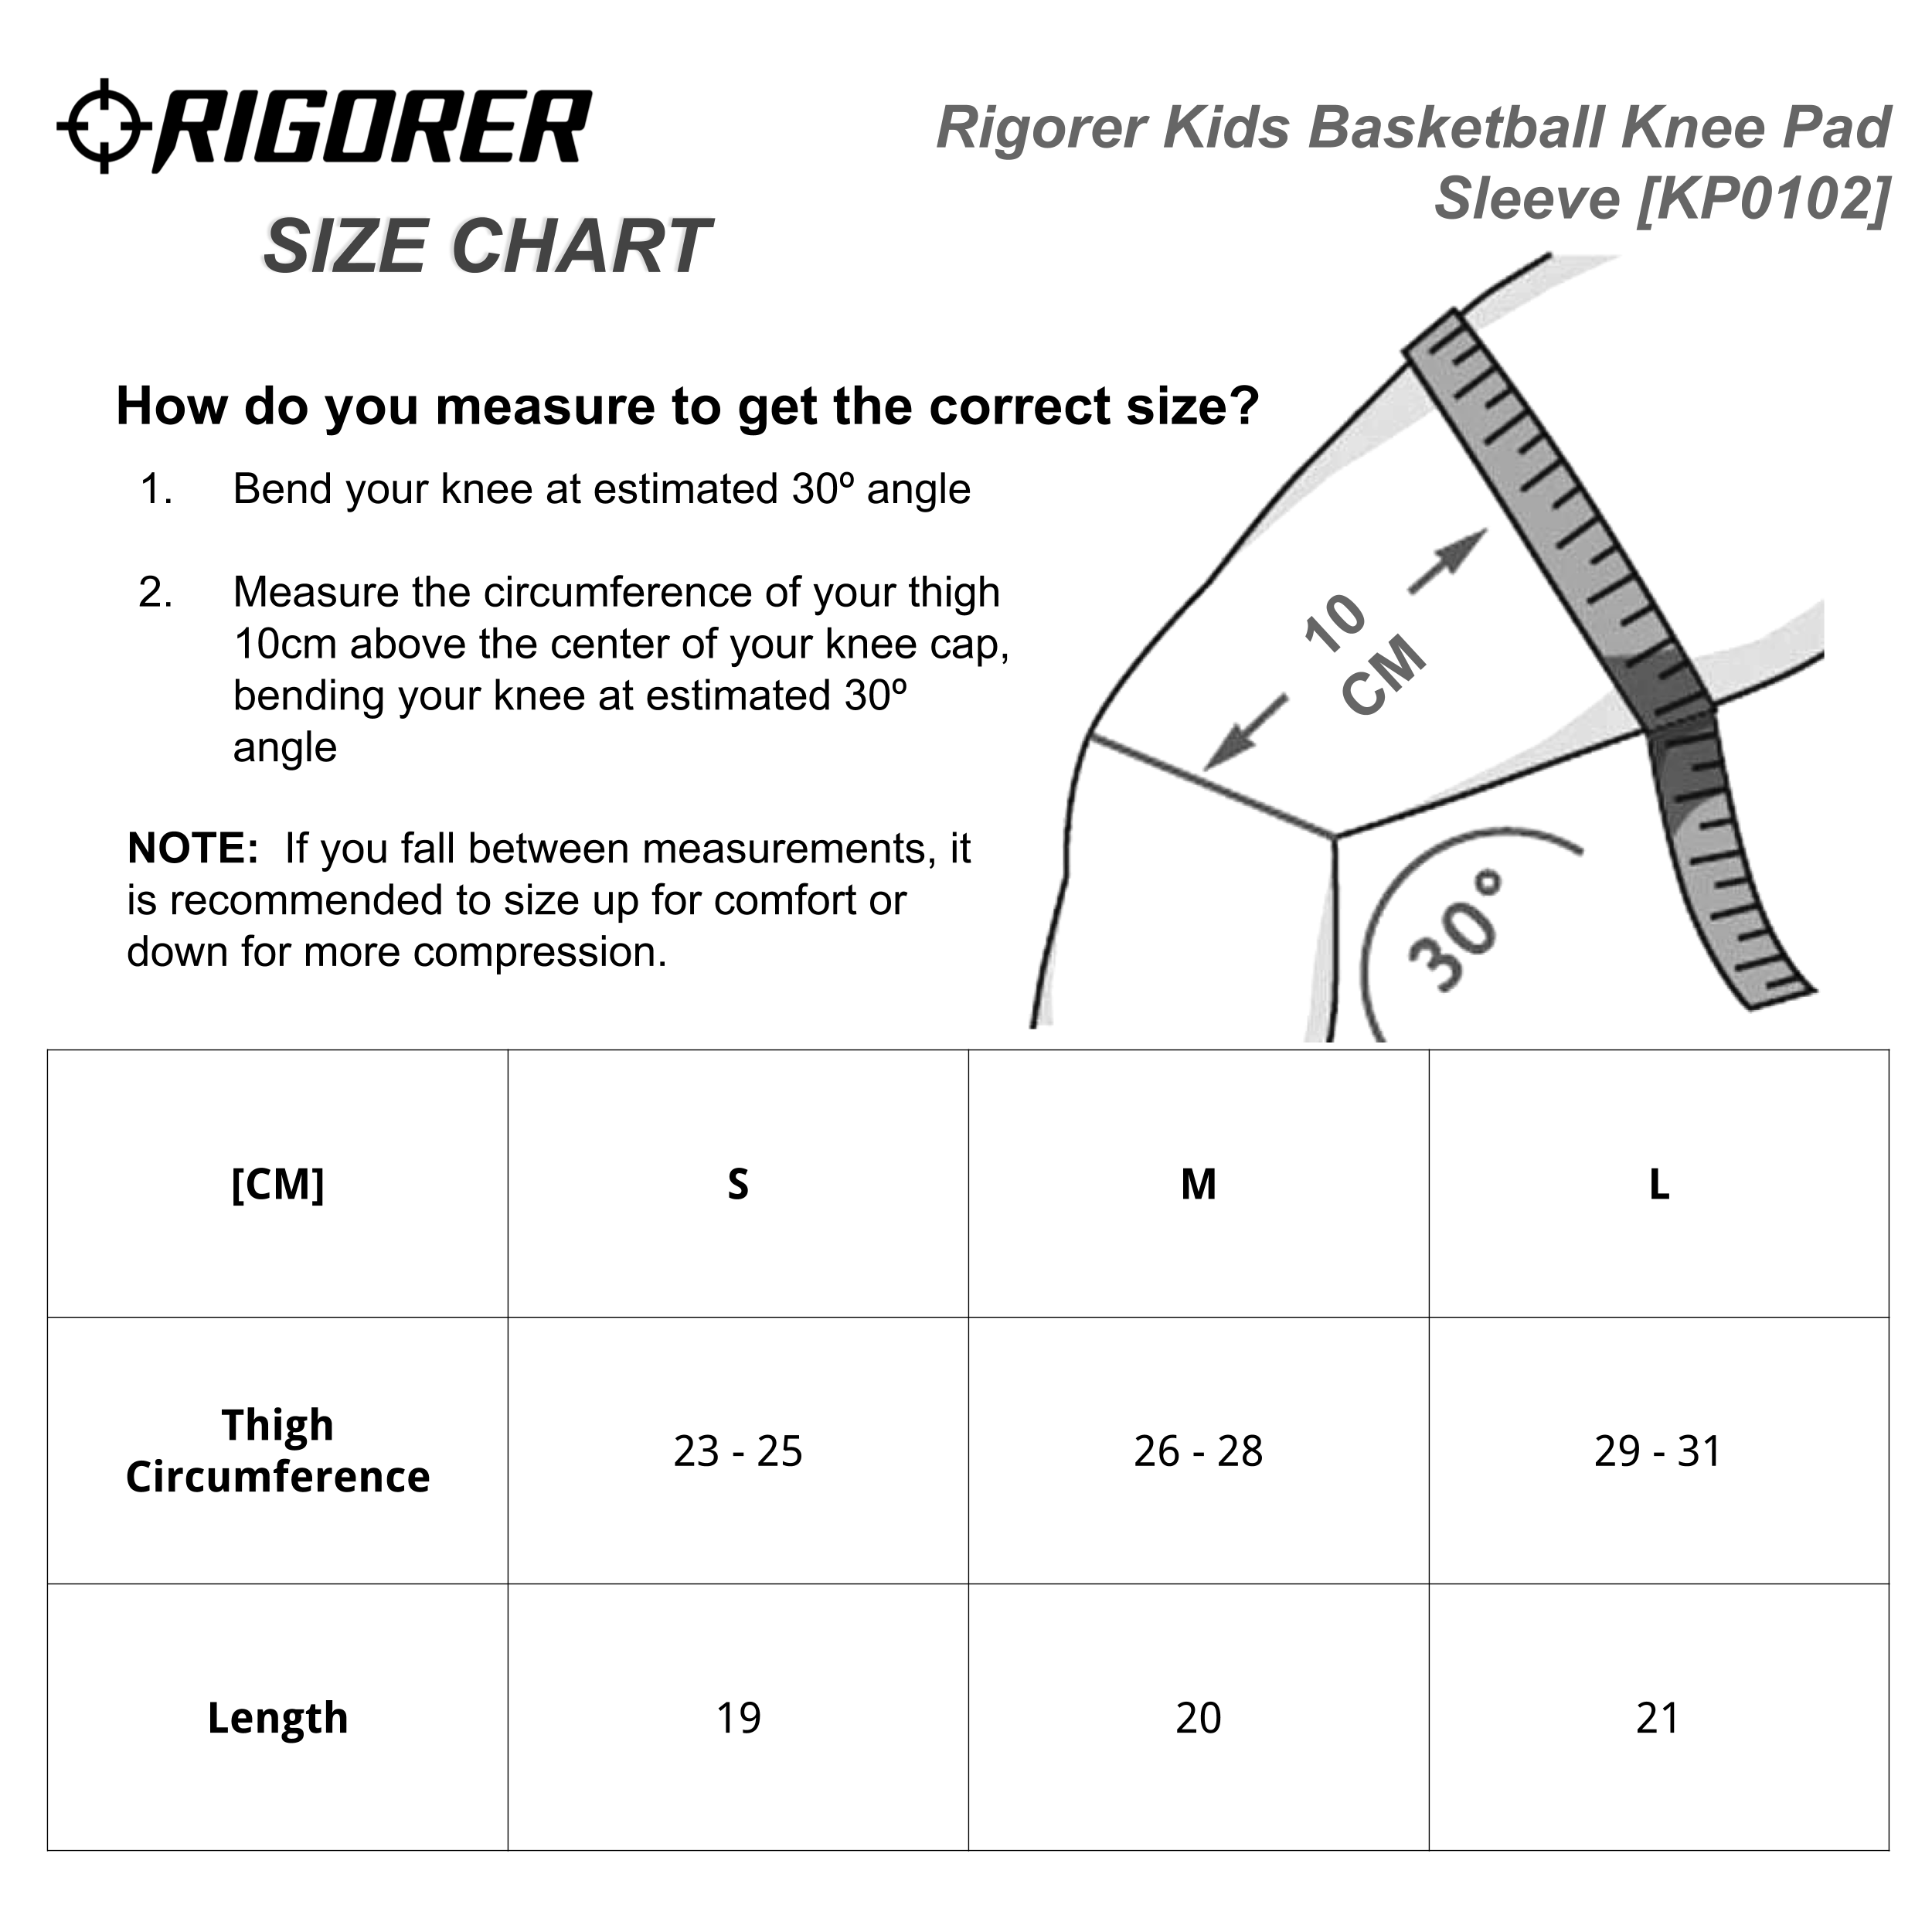 Rigorer Kids Basketball Knee Pad Sleeve [KP0102] Sizing Chart